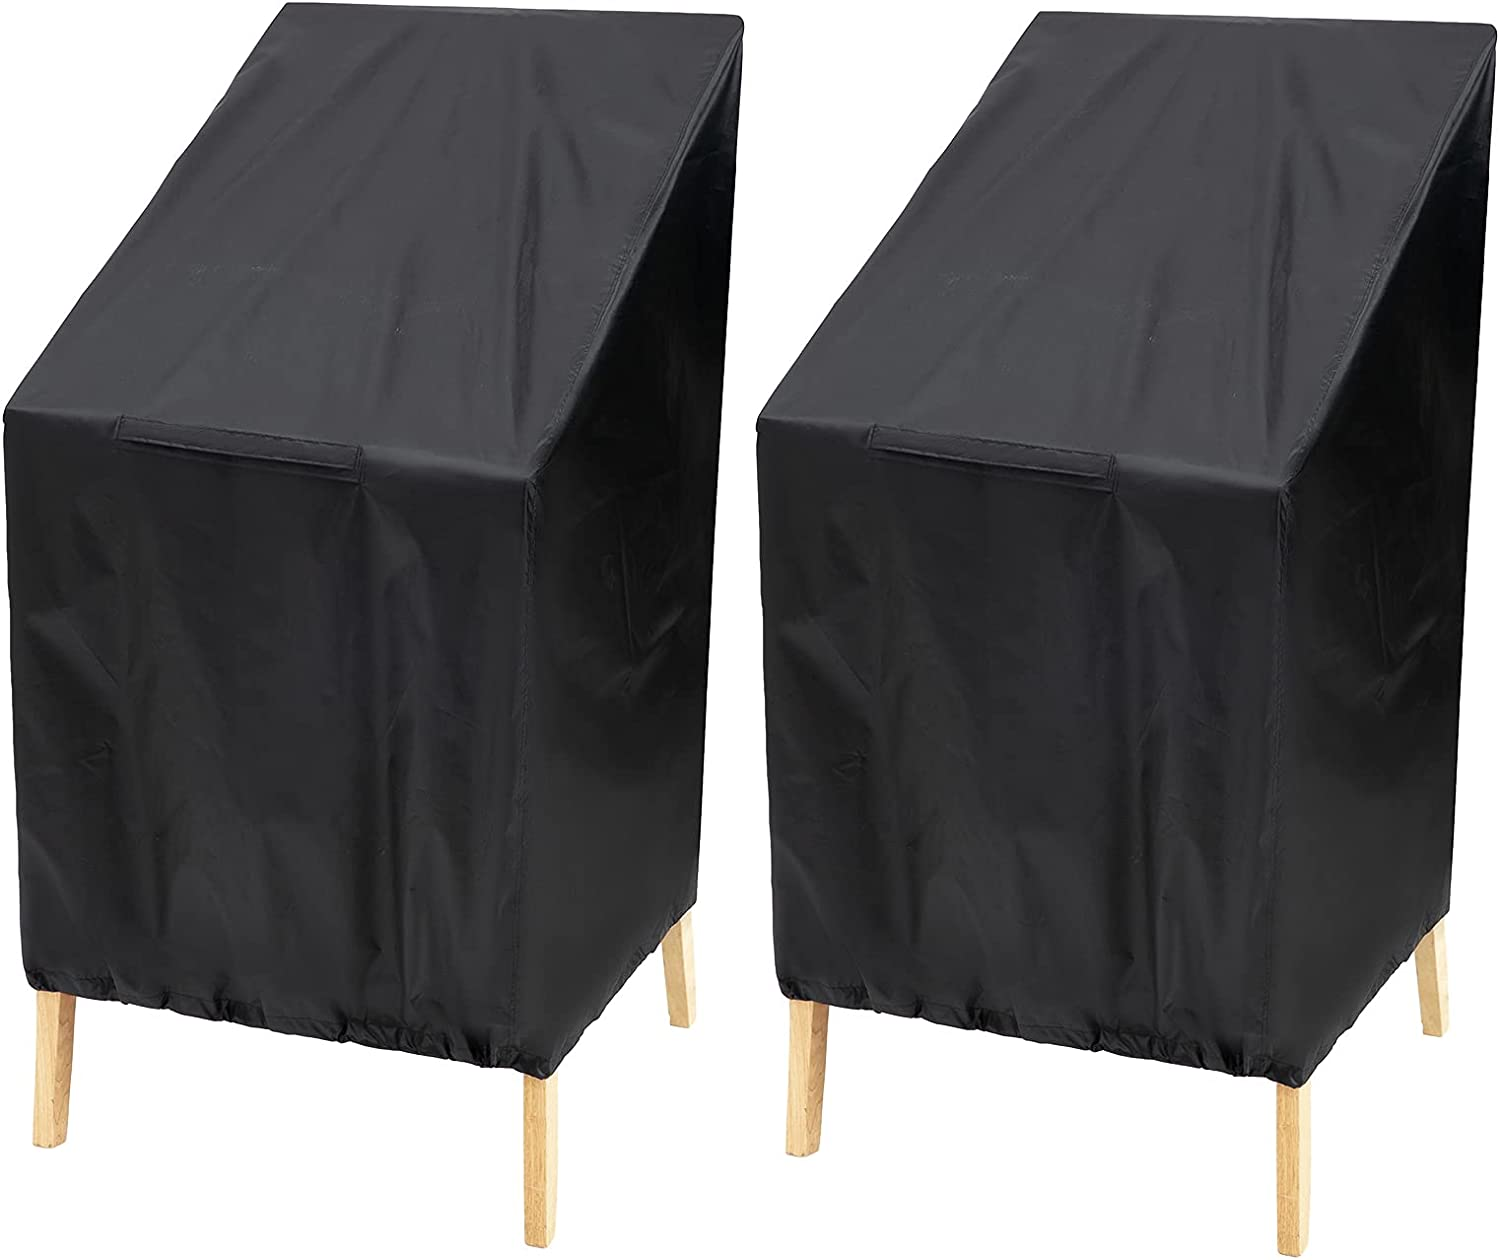 BILIENTE 2 Pack Waterproof Stackable Patio Chair Covers Classic Outdoor Garden High Back Windproof UV Protection Furniture Bar Stacking Chair Cover 25W x 25D x 27.5-47H inch Black